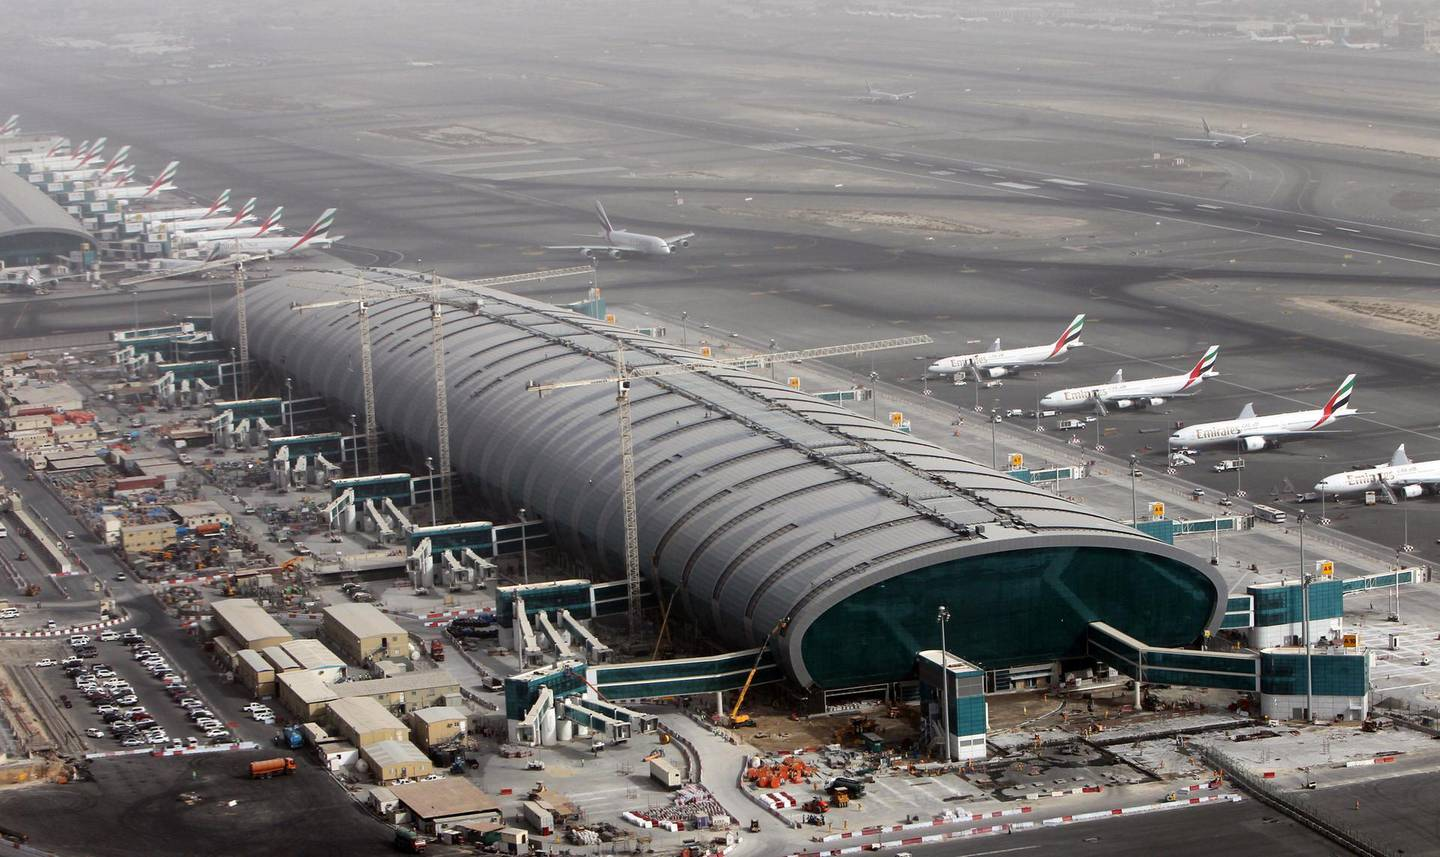 epa06977148 (FILE) - Aircrafts of the Emirates Airlines parking at the Dubai International airport in the Gulf emirate of Dubai, United Arab Emirates, 27 May 2012  (reissued 27 August 2018). The United Arab Emirates General Authority of Civil Aviation on 27 August 2018 denied reports that UAE air traffic was disrupted after an alleged Houthi drone attack. Iran- and Houthi-affiliated media reported claims that Houthi militias from Yemen had carried out a drone attack on Dubai airport.  EPA/ALI HAIDER